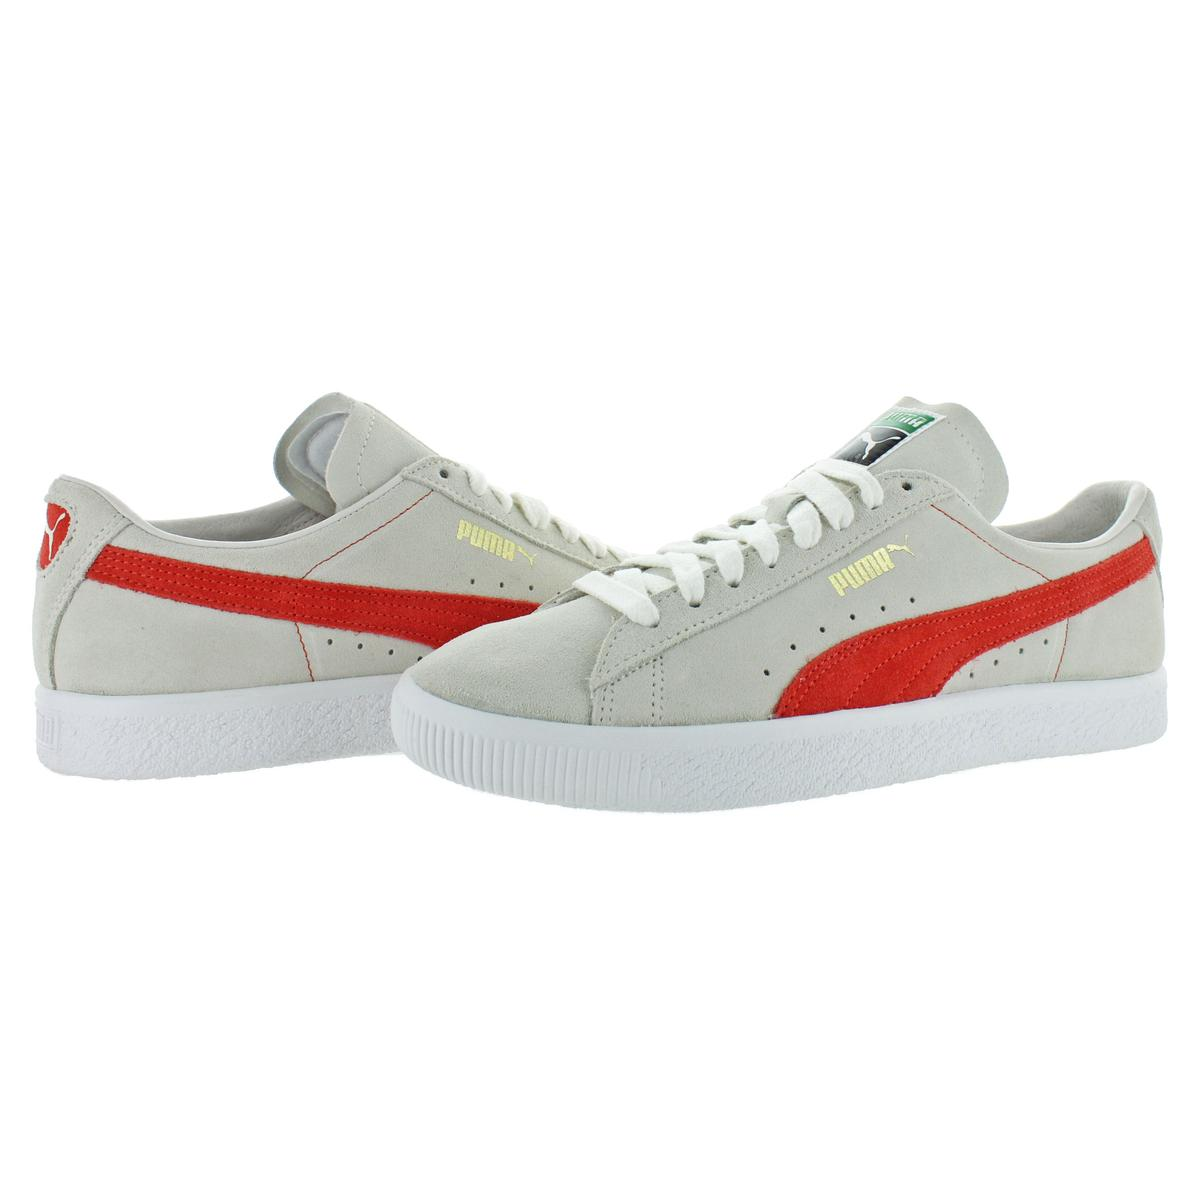 Puma-Suede-Classic-Men-039-s-Fashion-Sneakers-Shoes thumbnail 58